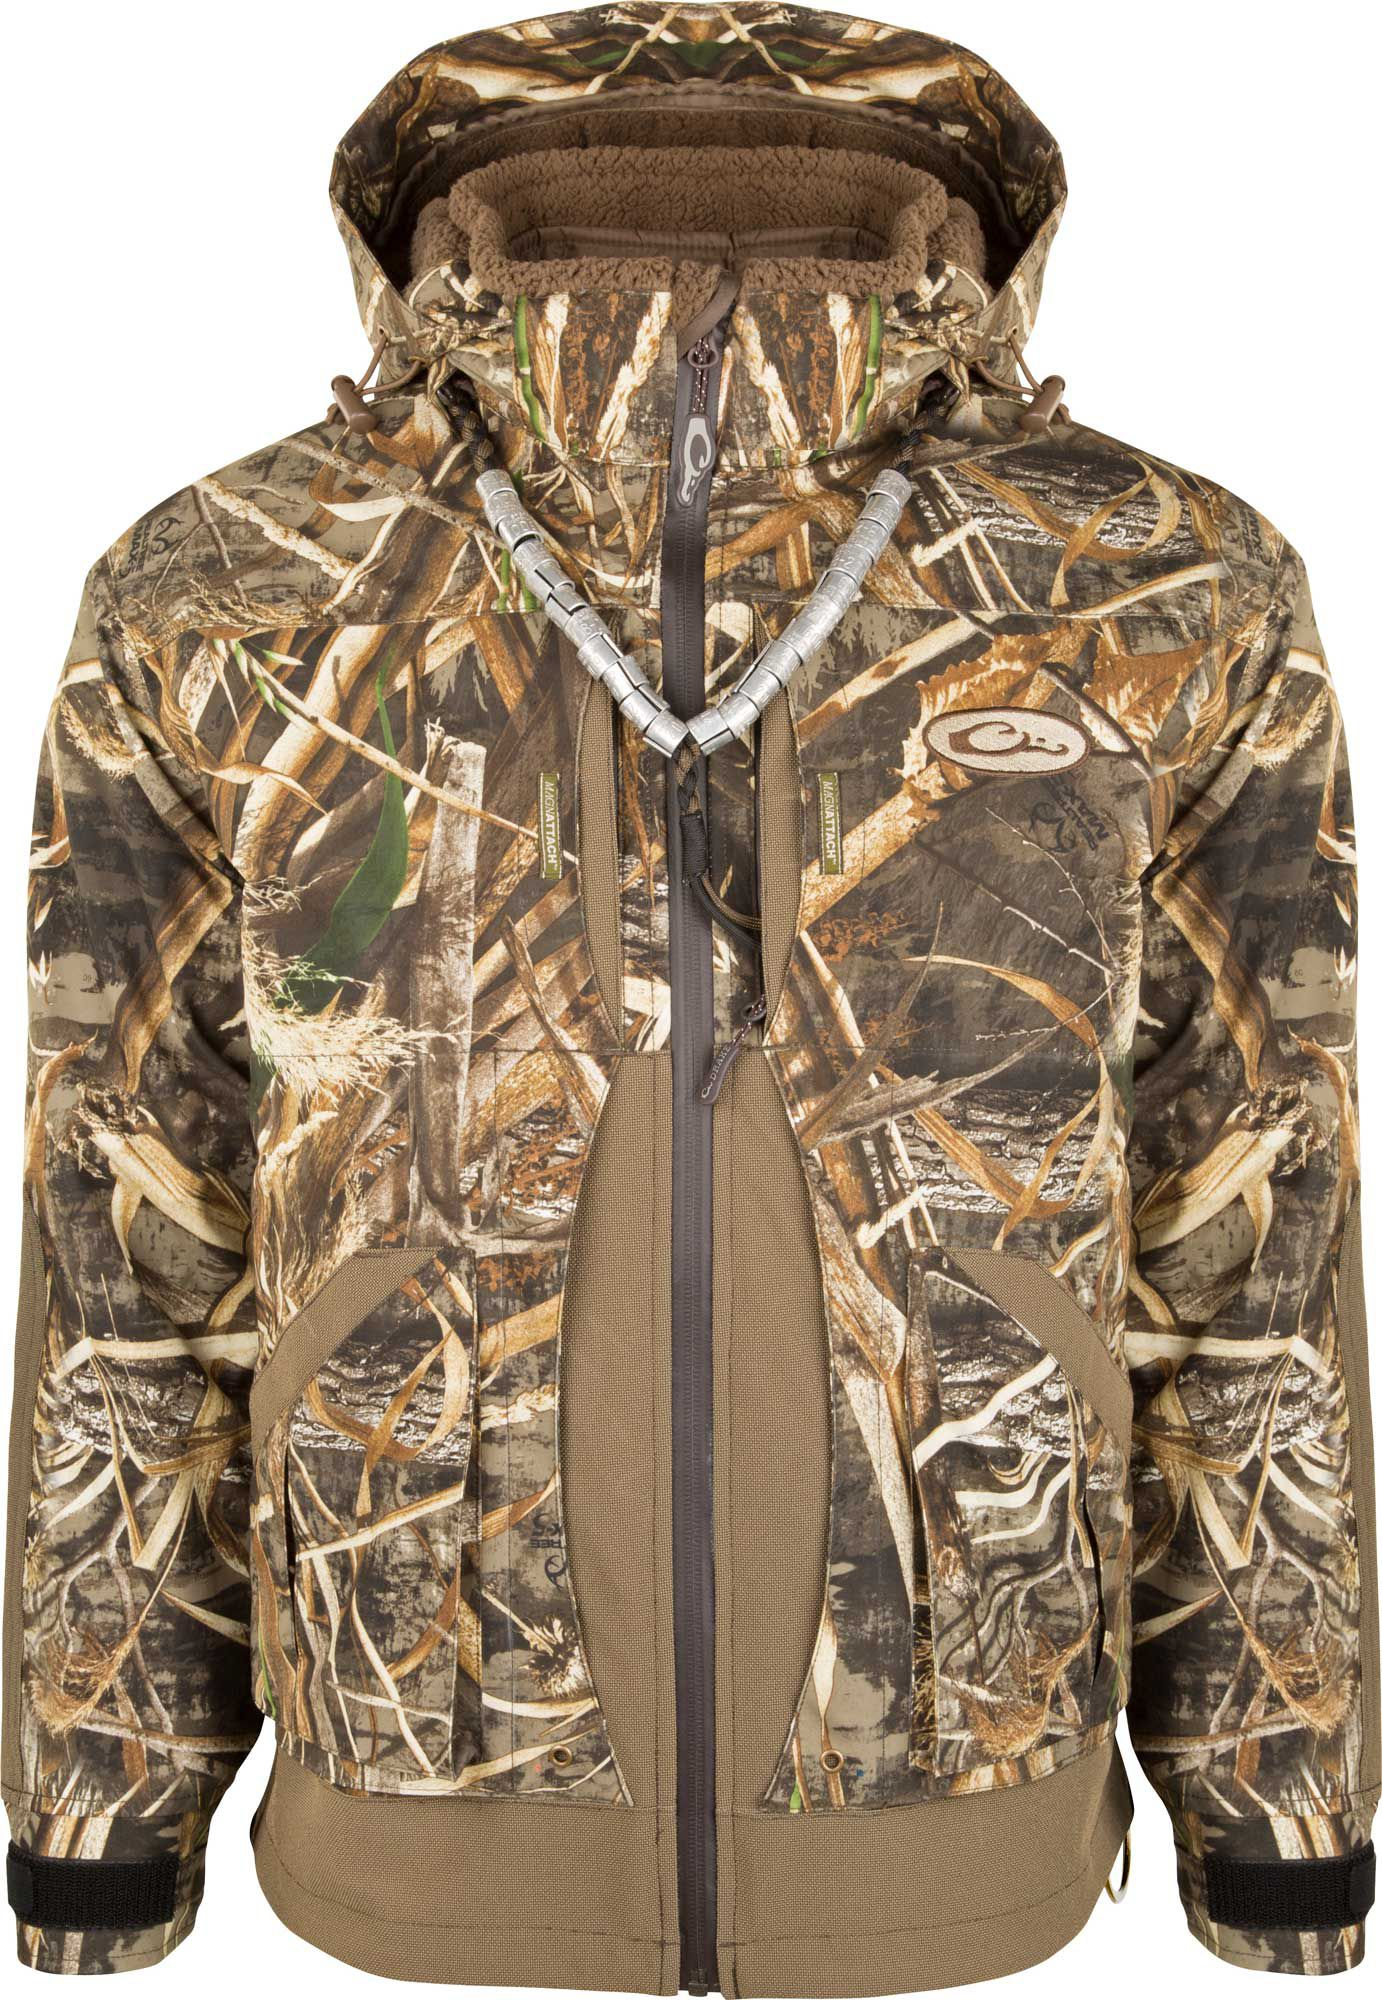 Drake Waterfowl Men's Guardian Elite 3-in-1 Systems Hunting Jacket, Size: Small, Multi